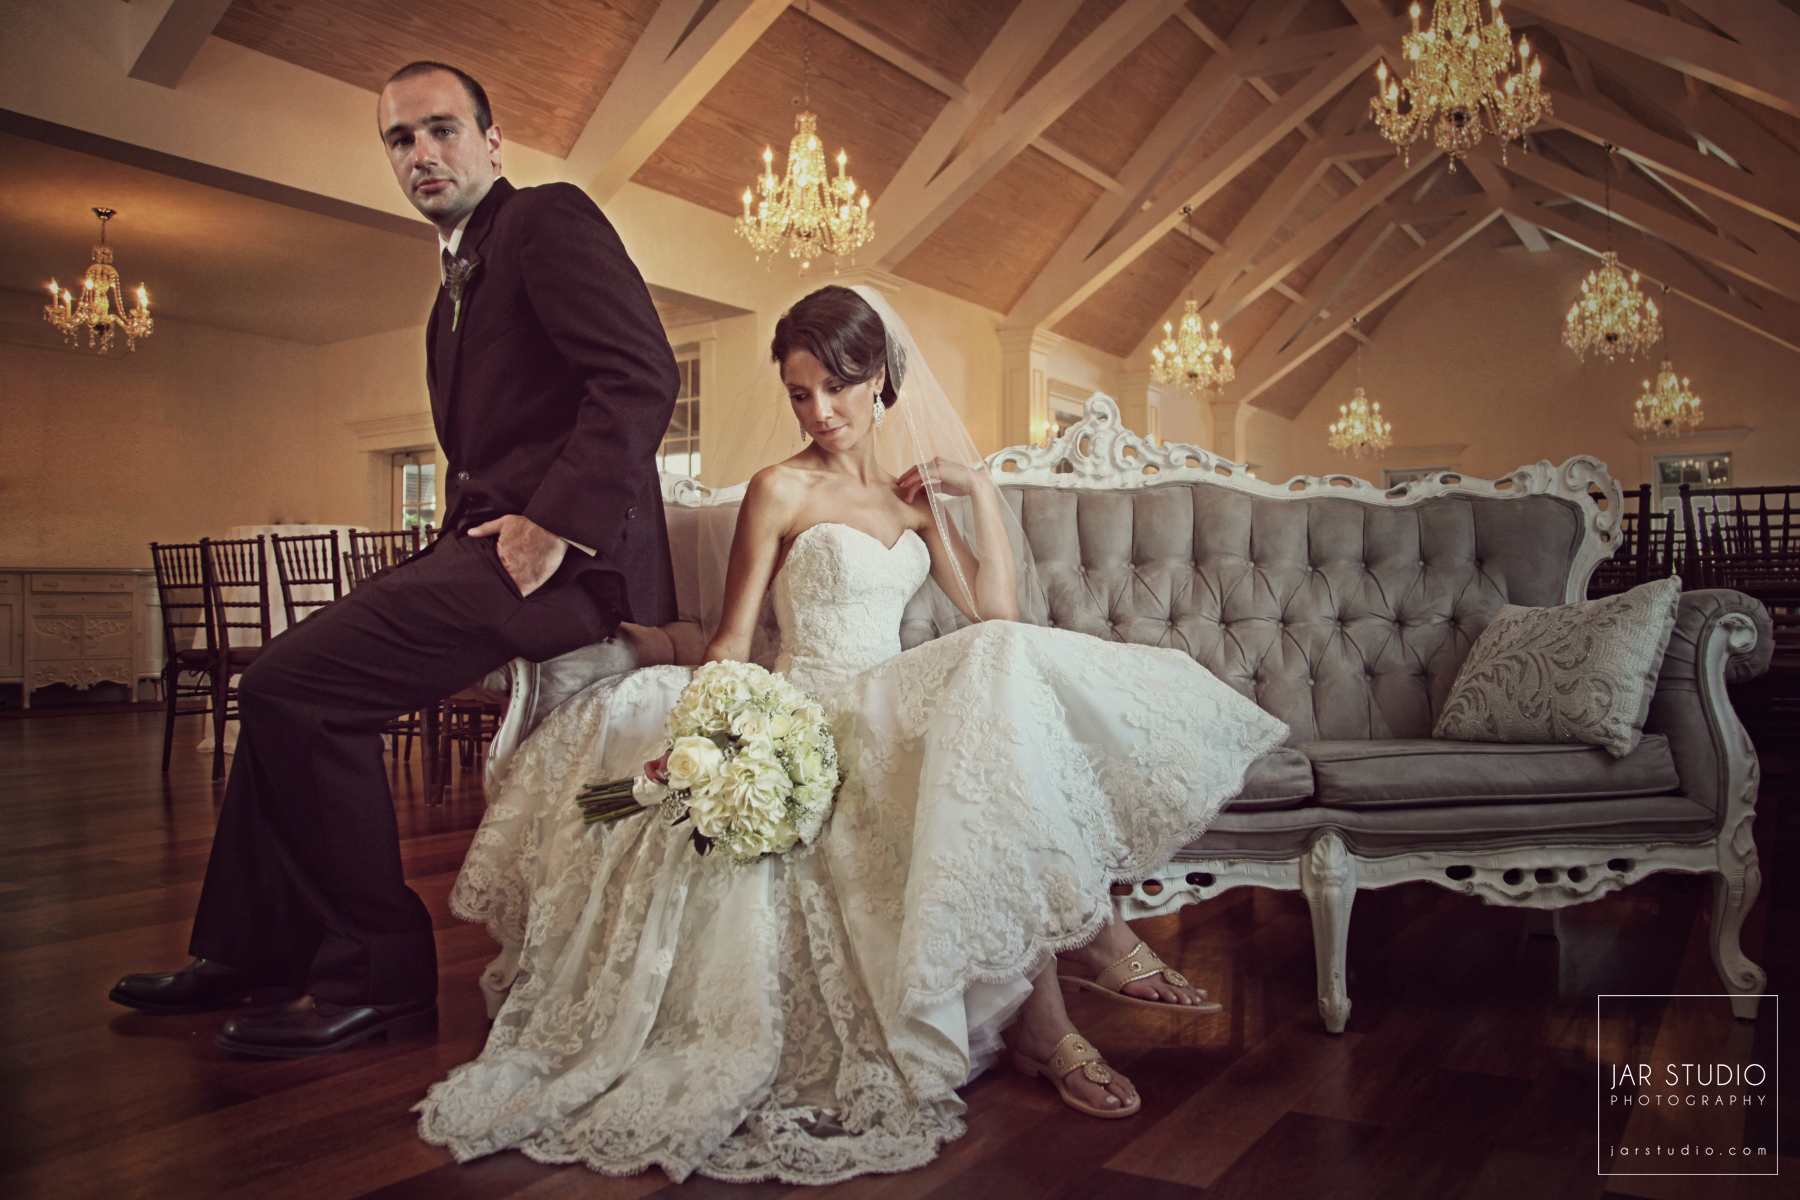 21-bridal-artistic-portrait-by-jarstudio-the-villa-blanca-st.augustine.JPG